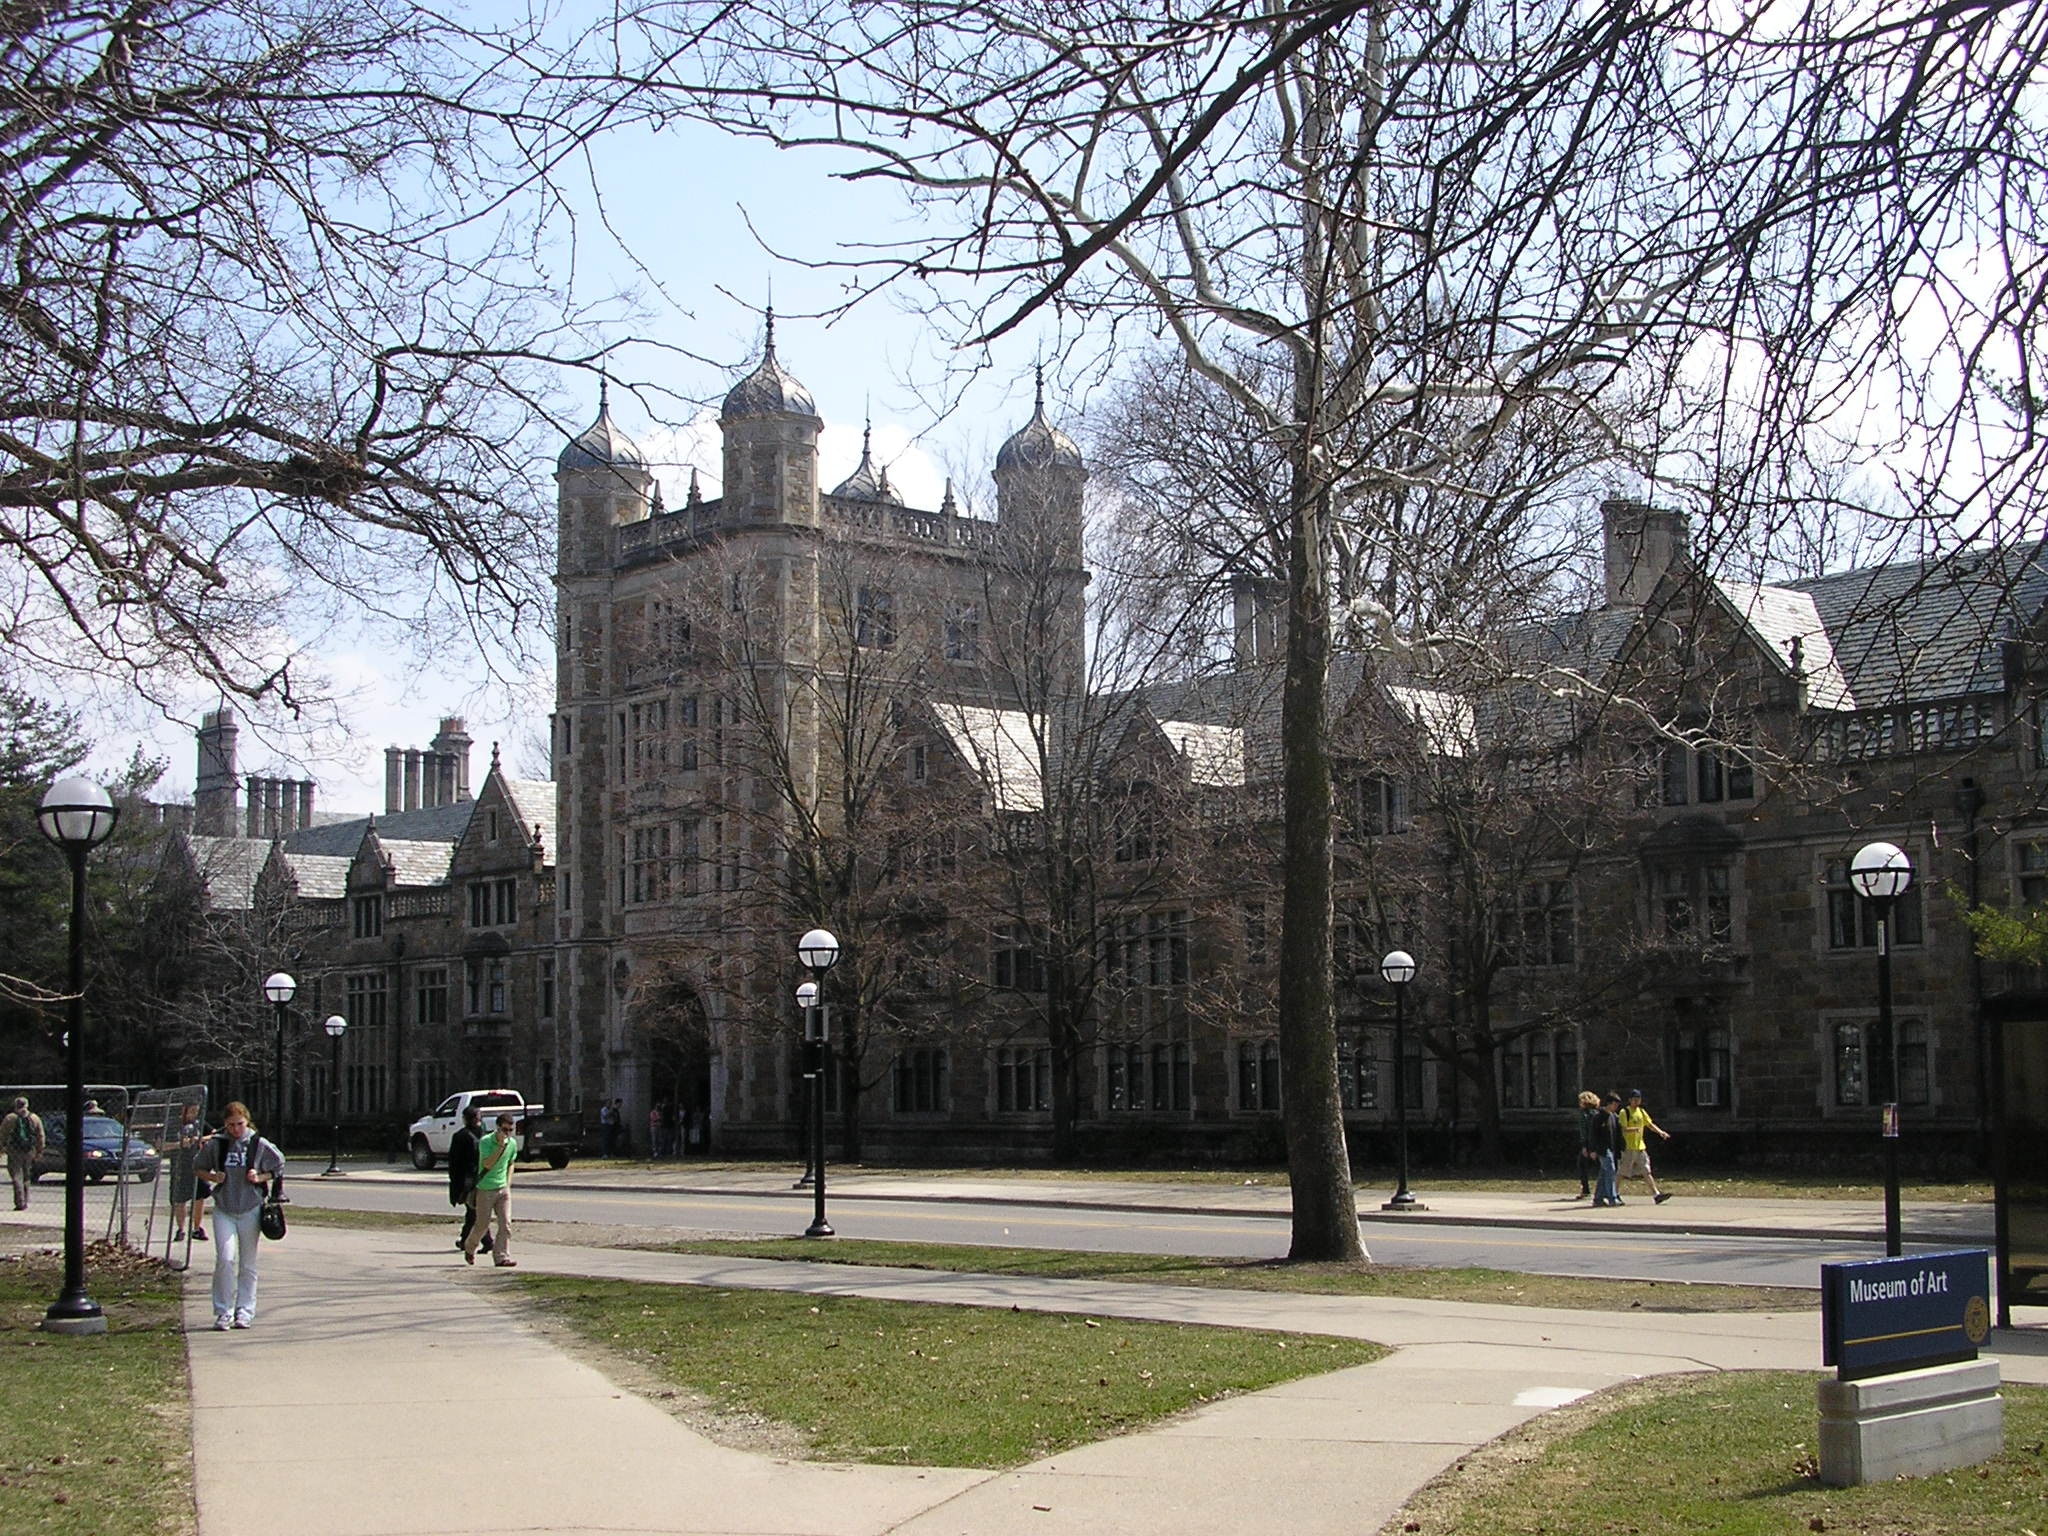 A picture of the university of michigan campus in ann arbor  michigan  usa